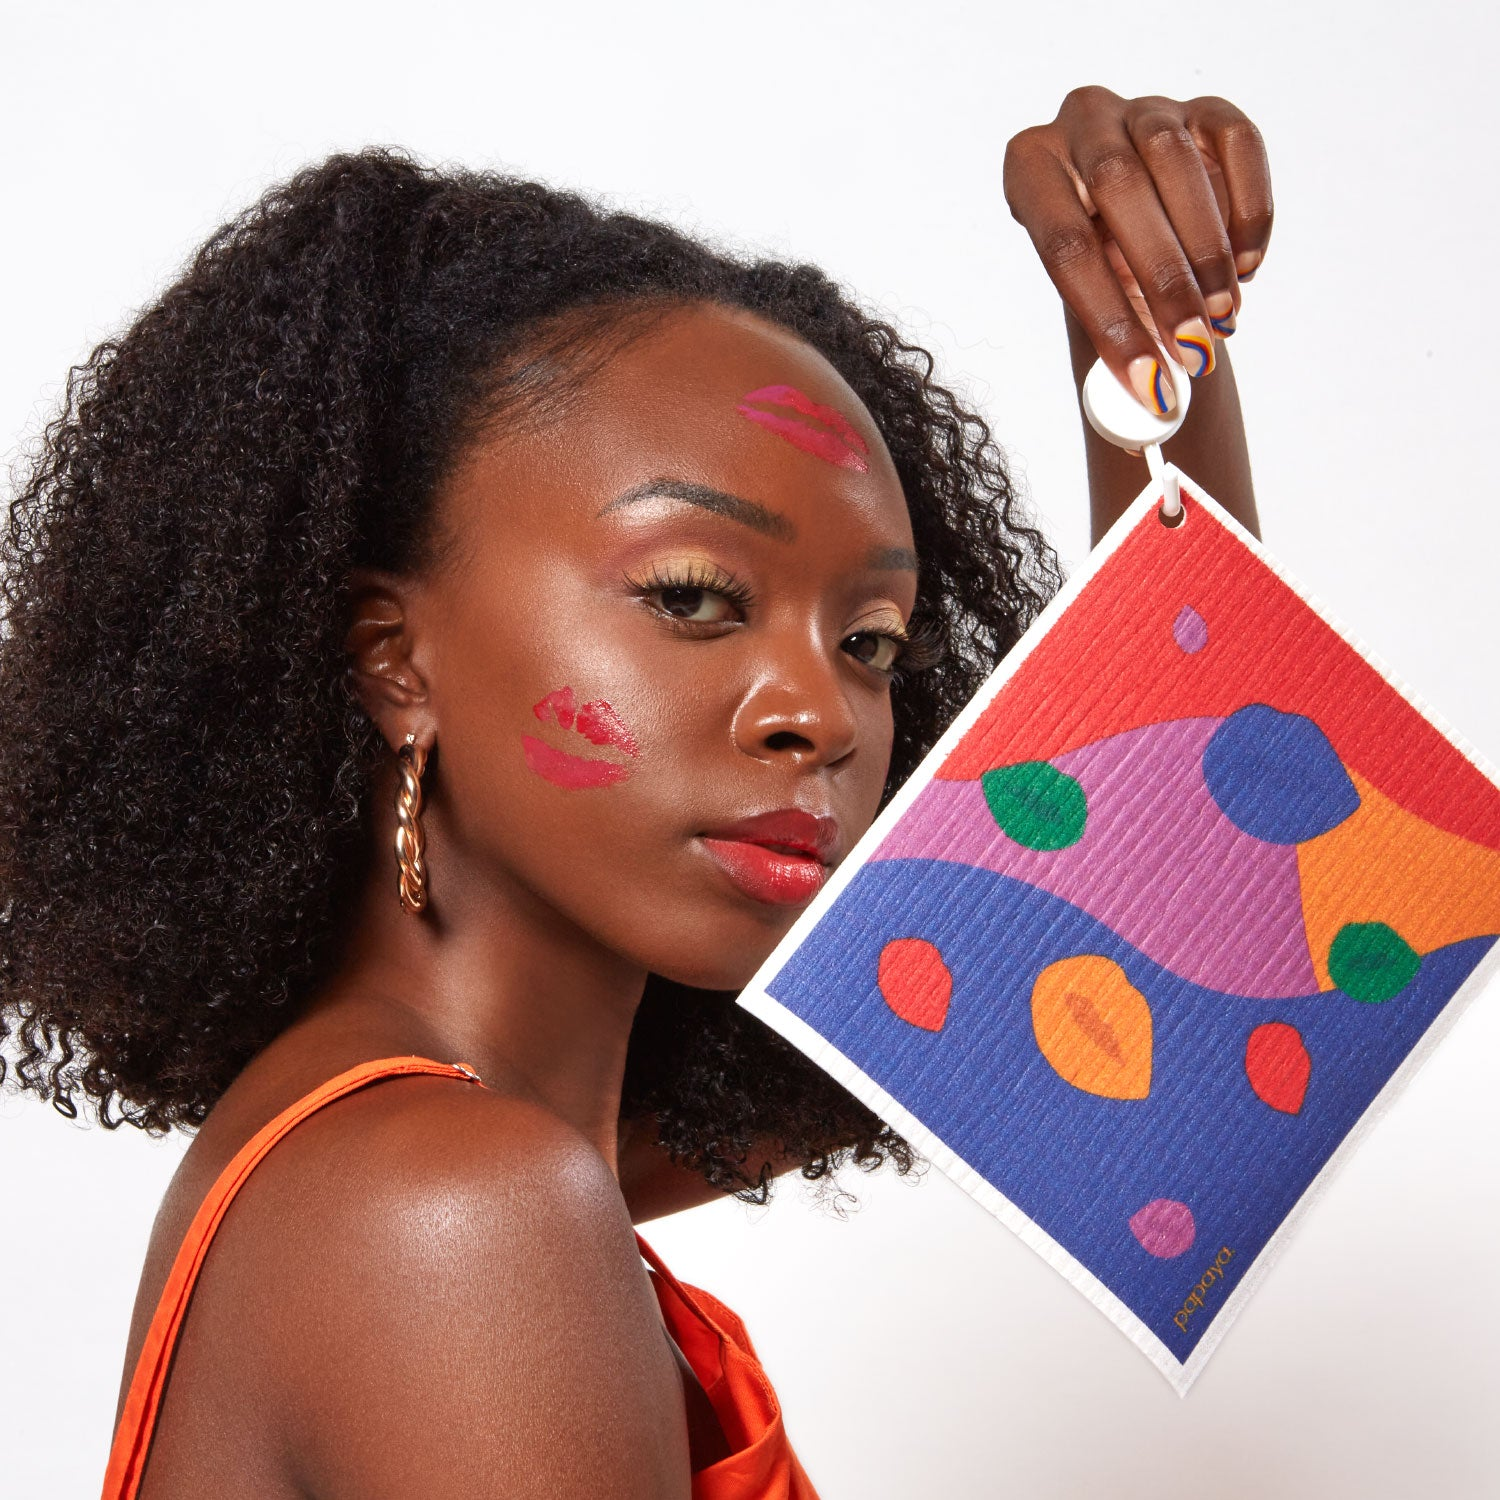 Model holding reusable paper towel with bright lips design and lipstick kisses on her face